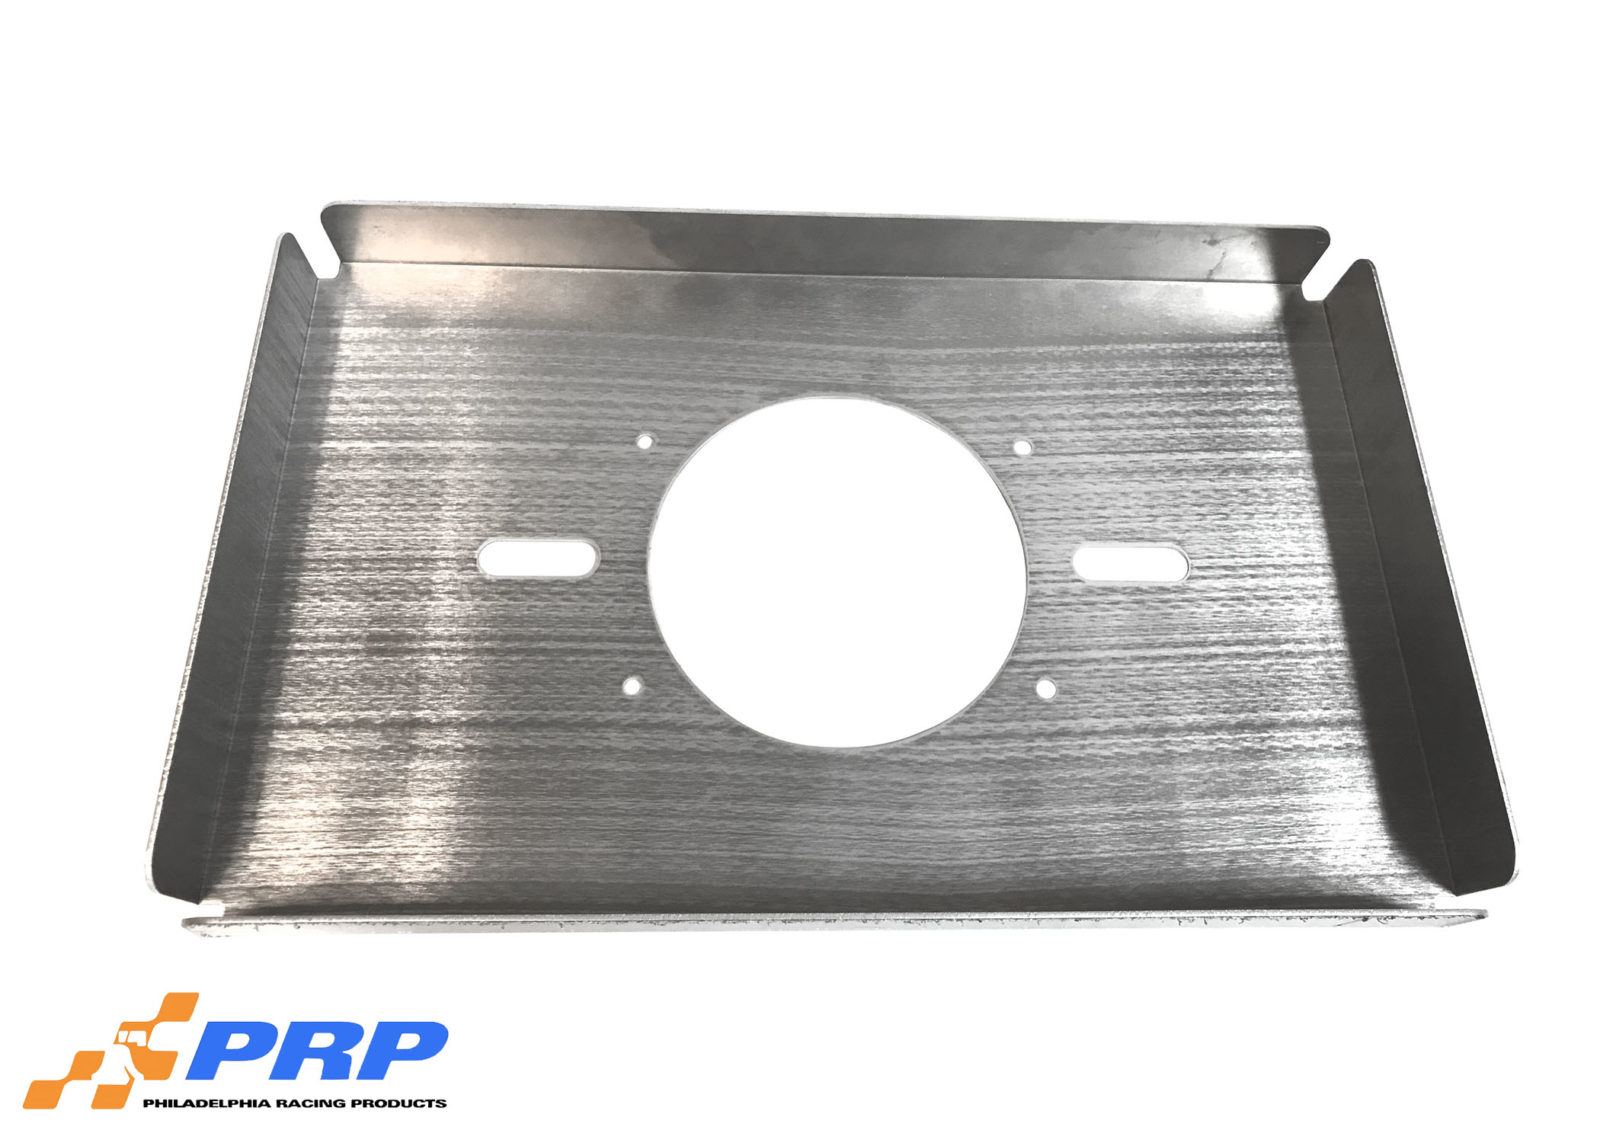 Flat Scoop Tray made by PRP Racing Products